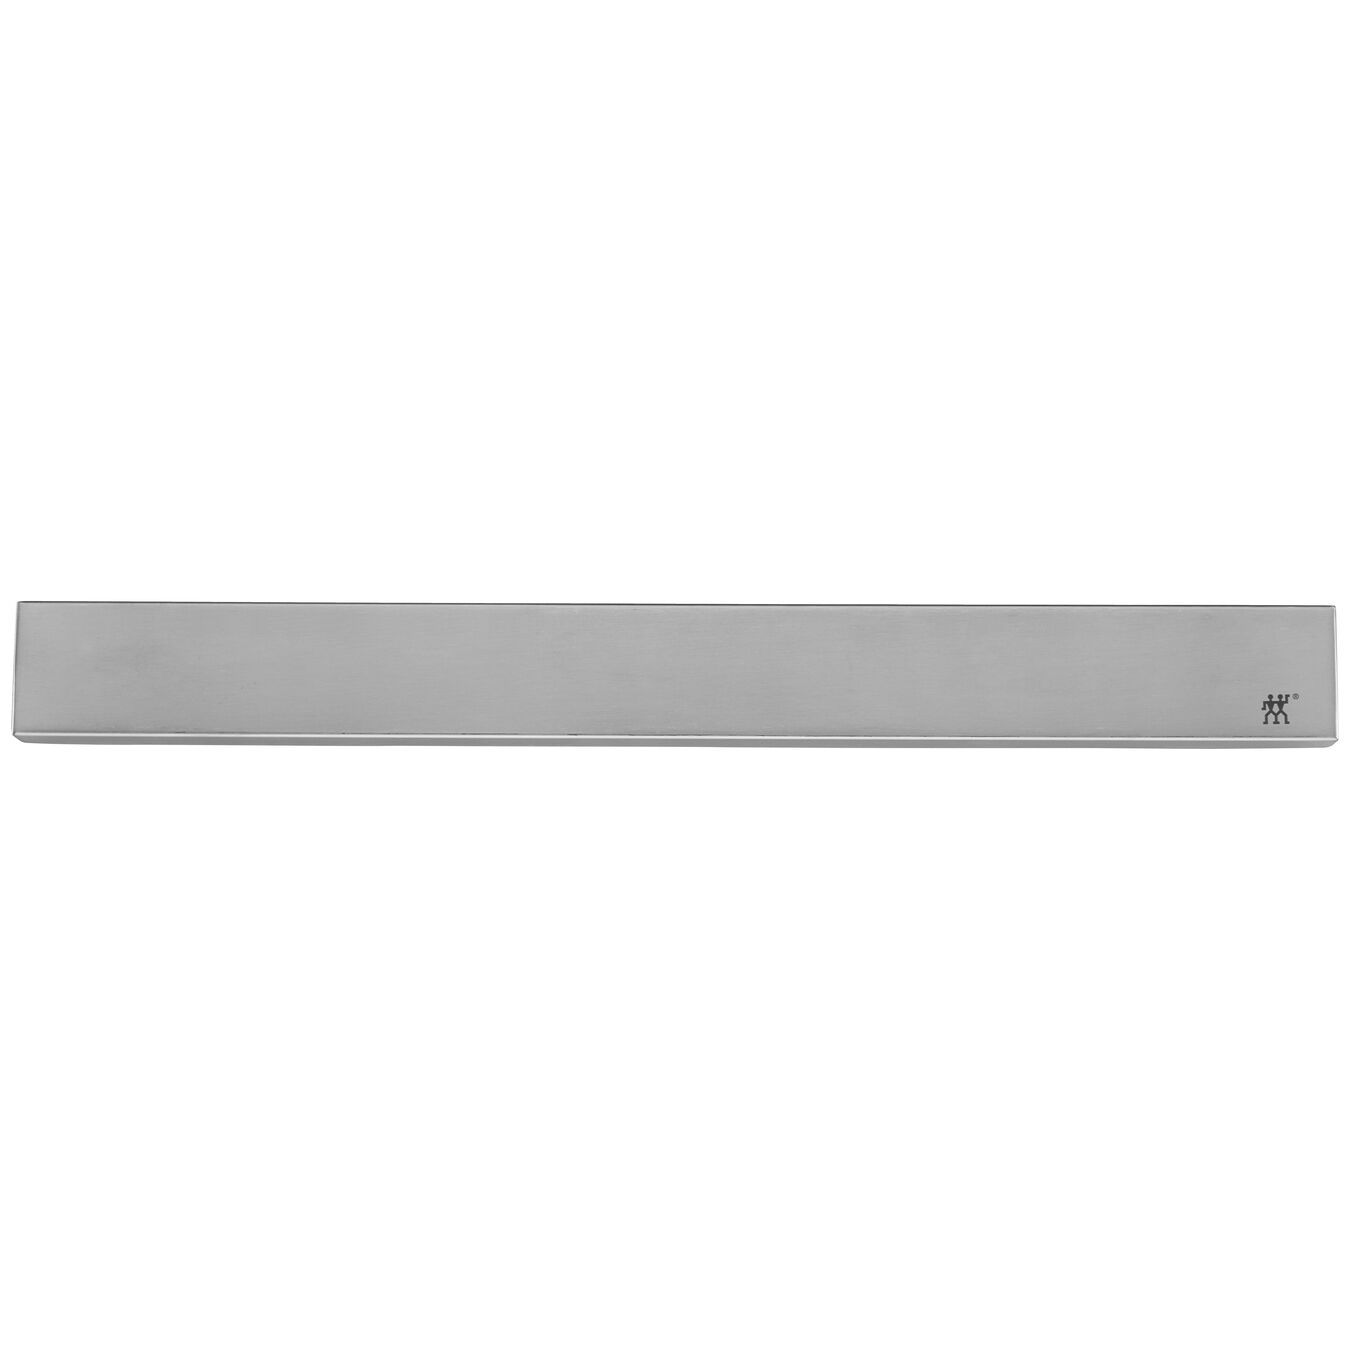 21-inch, Steel, Magnetic knife bar, silver,,large 1